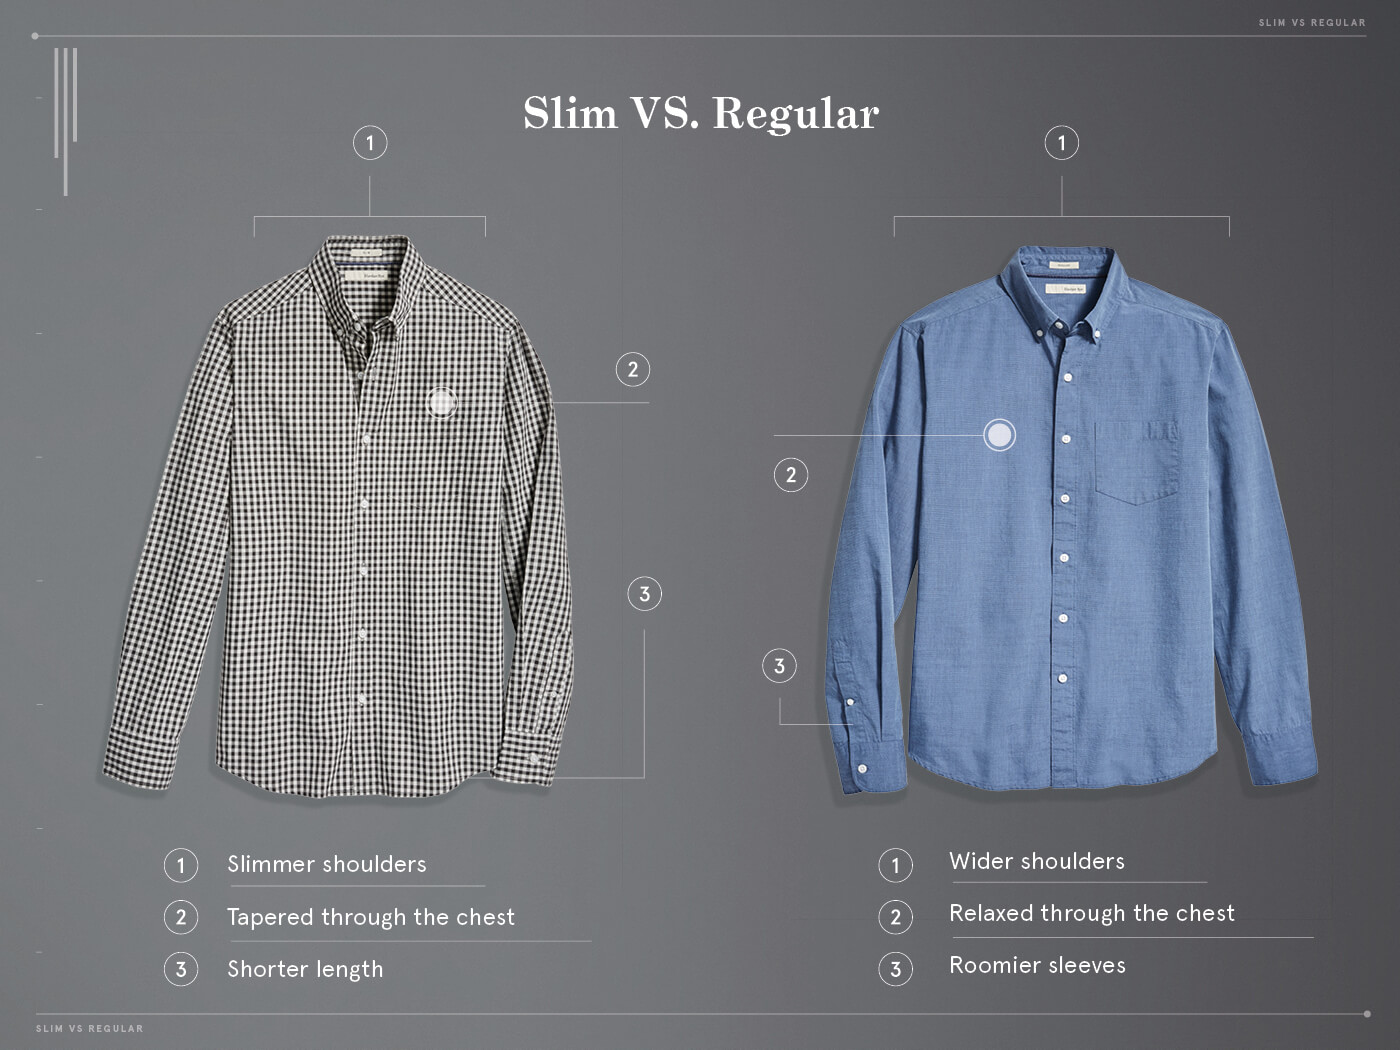 slim fit shirt vs regular shirt characteristics